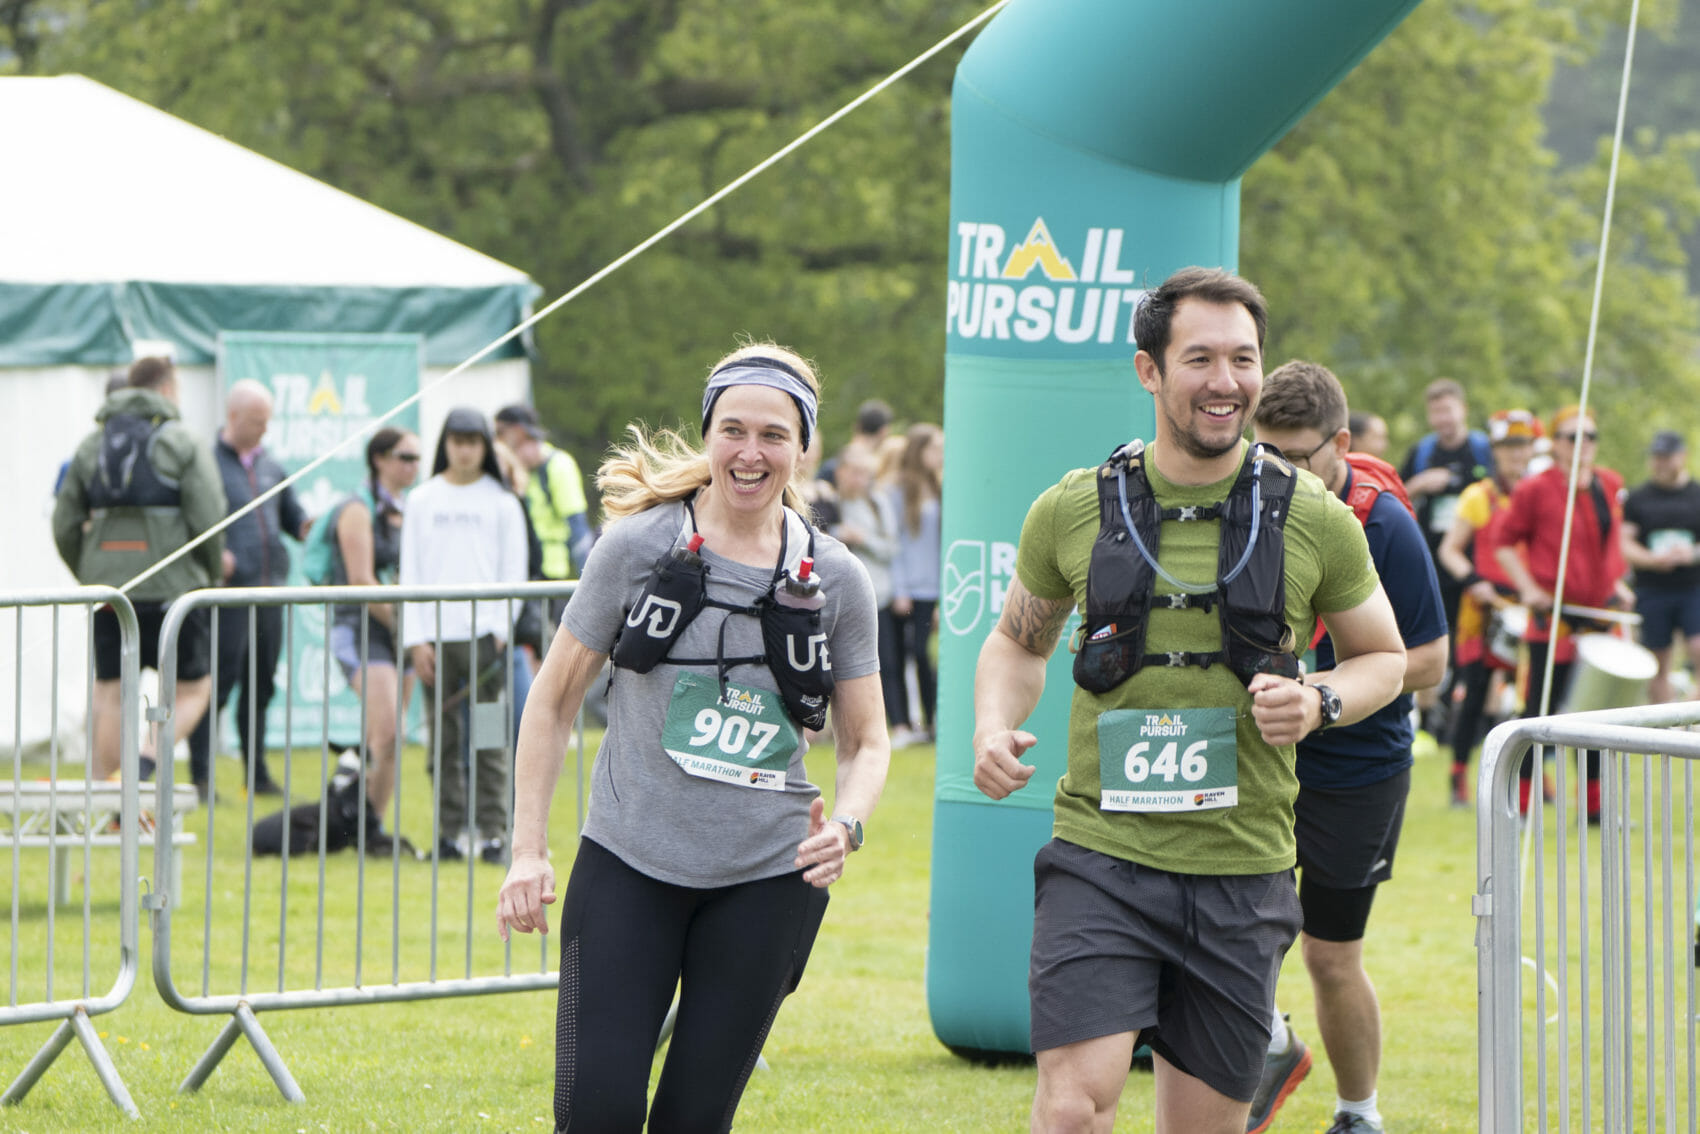 Try Trail Running with Trail Pursuit